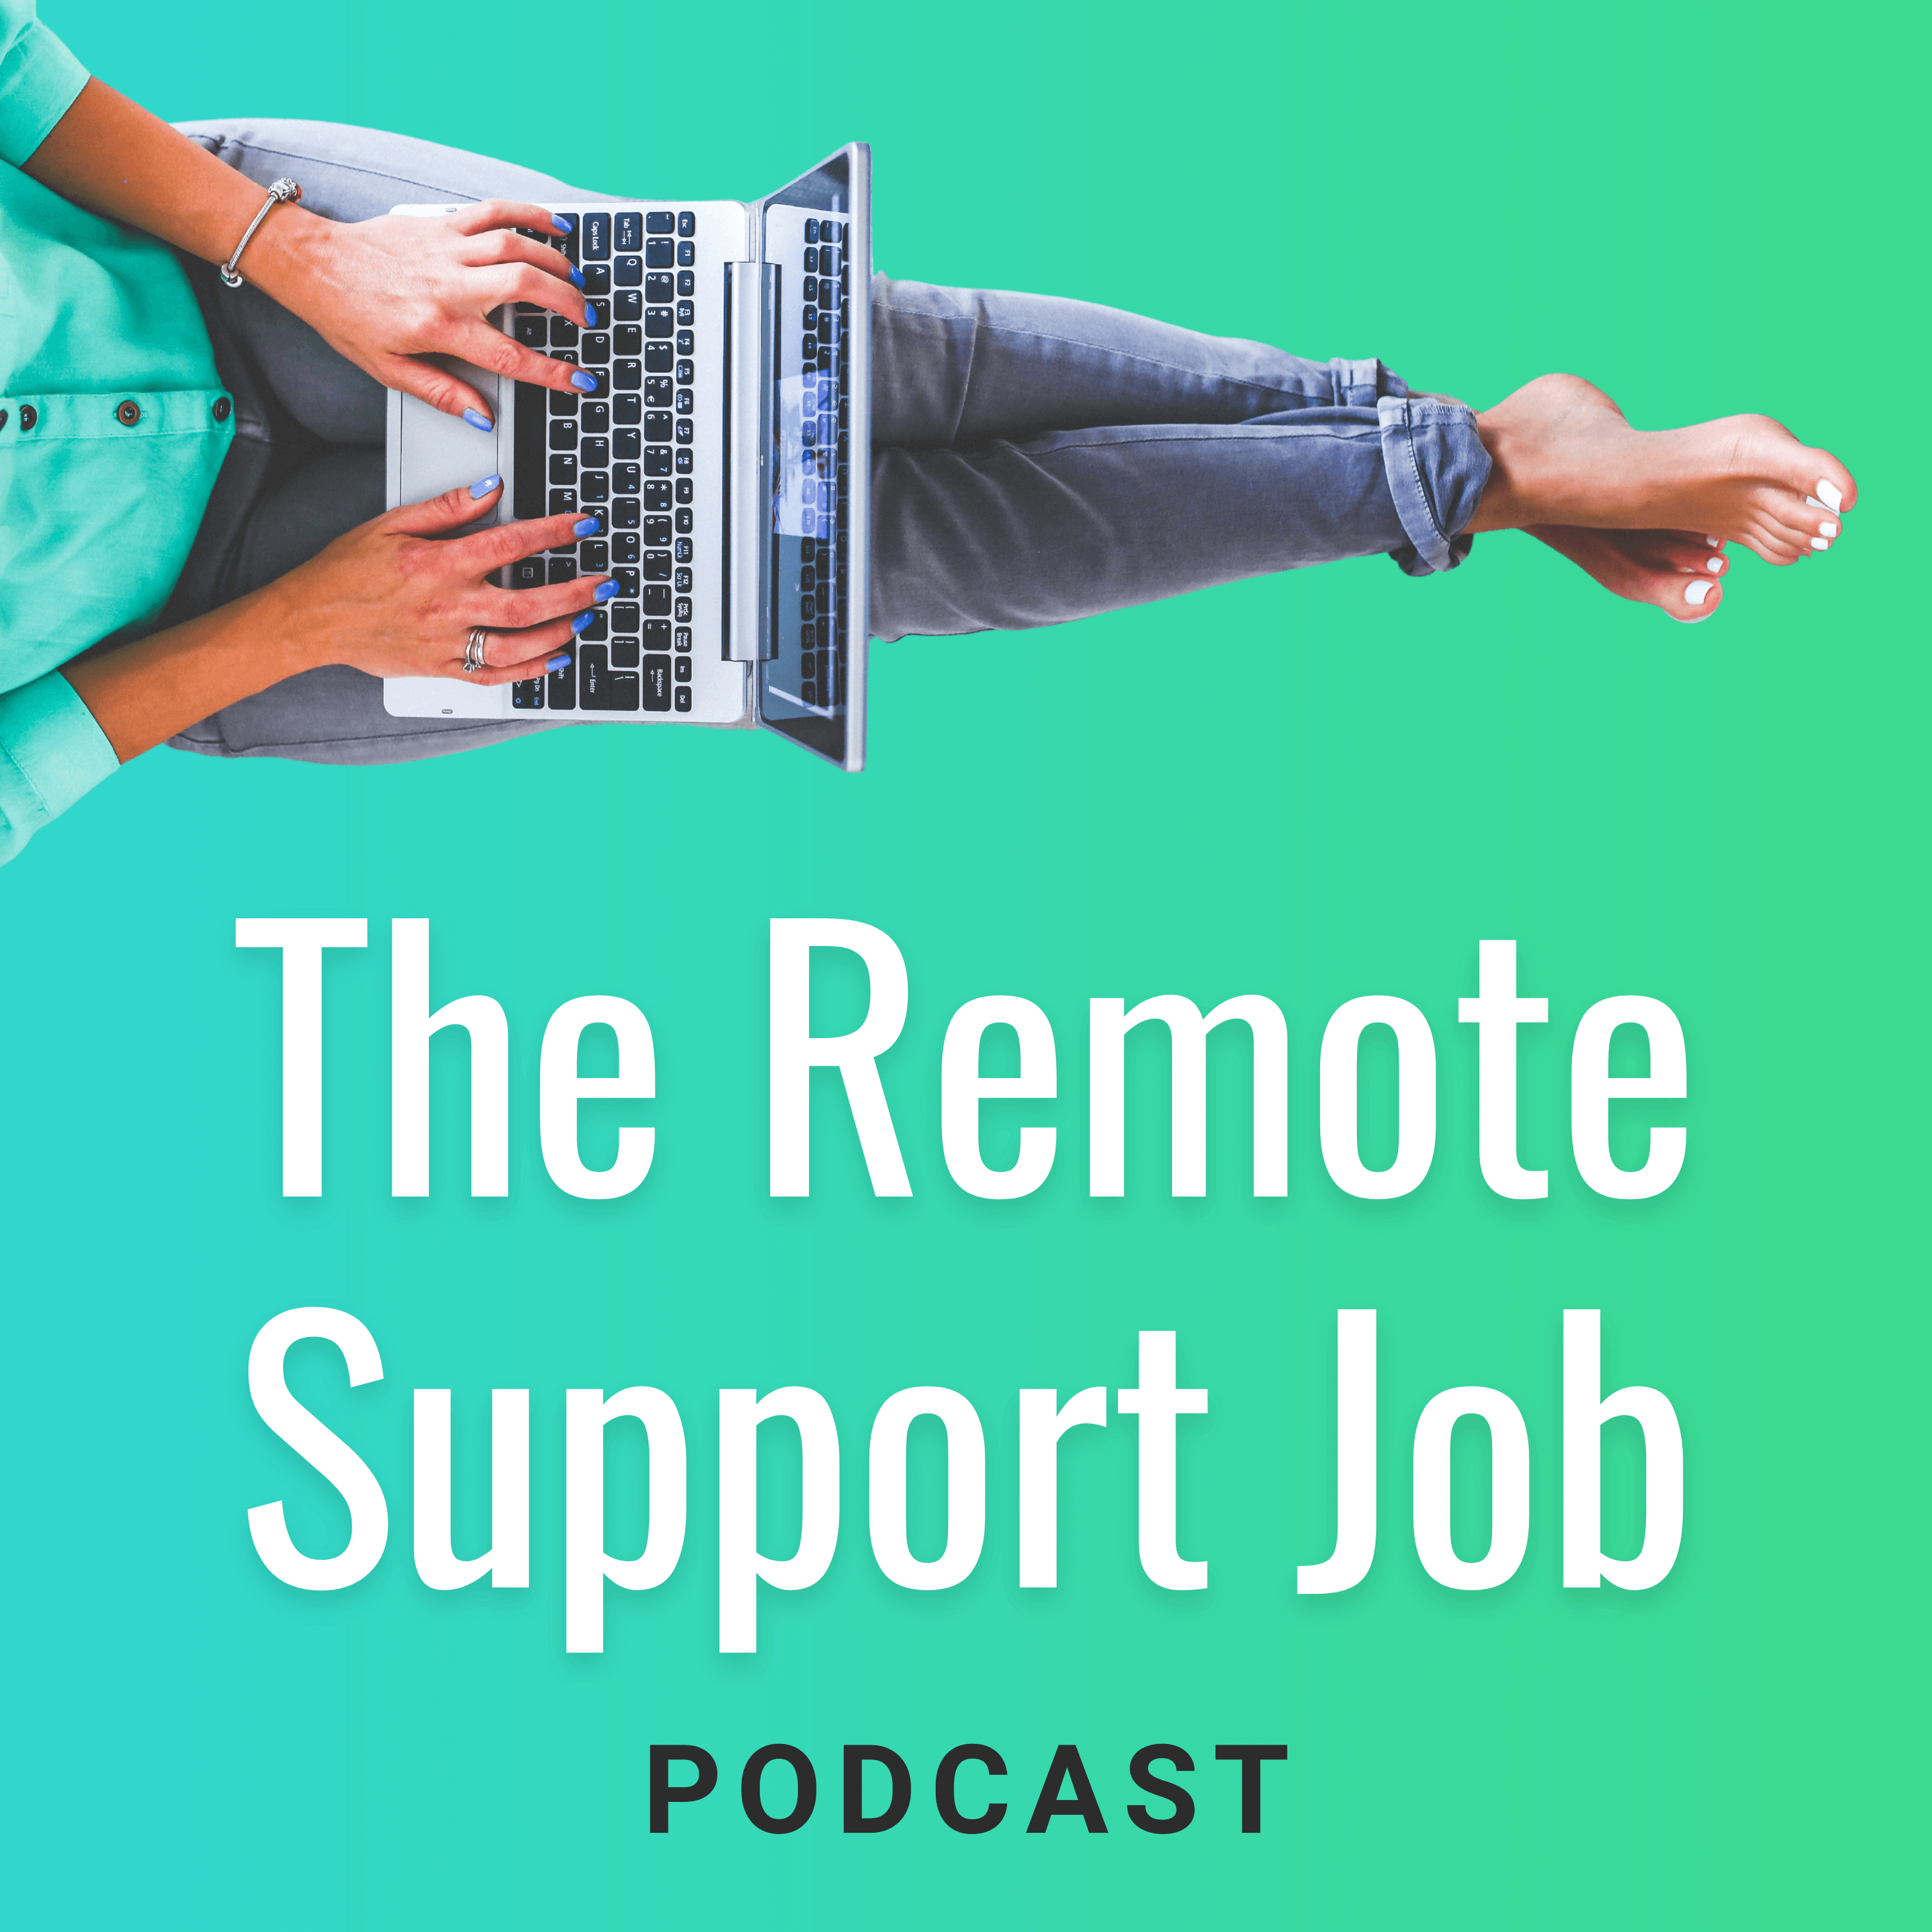 The Remote Support Job podcast cover